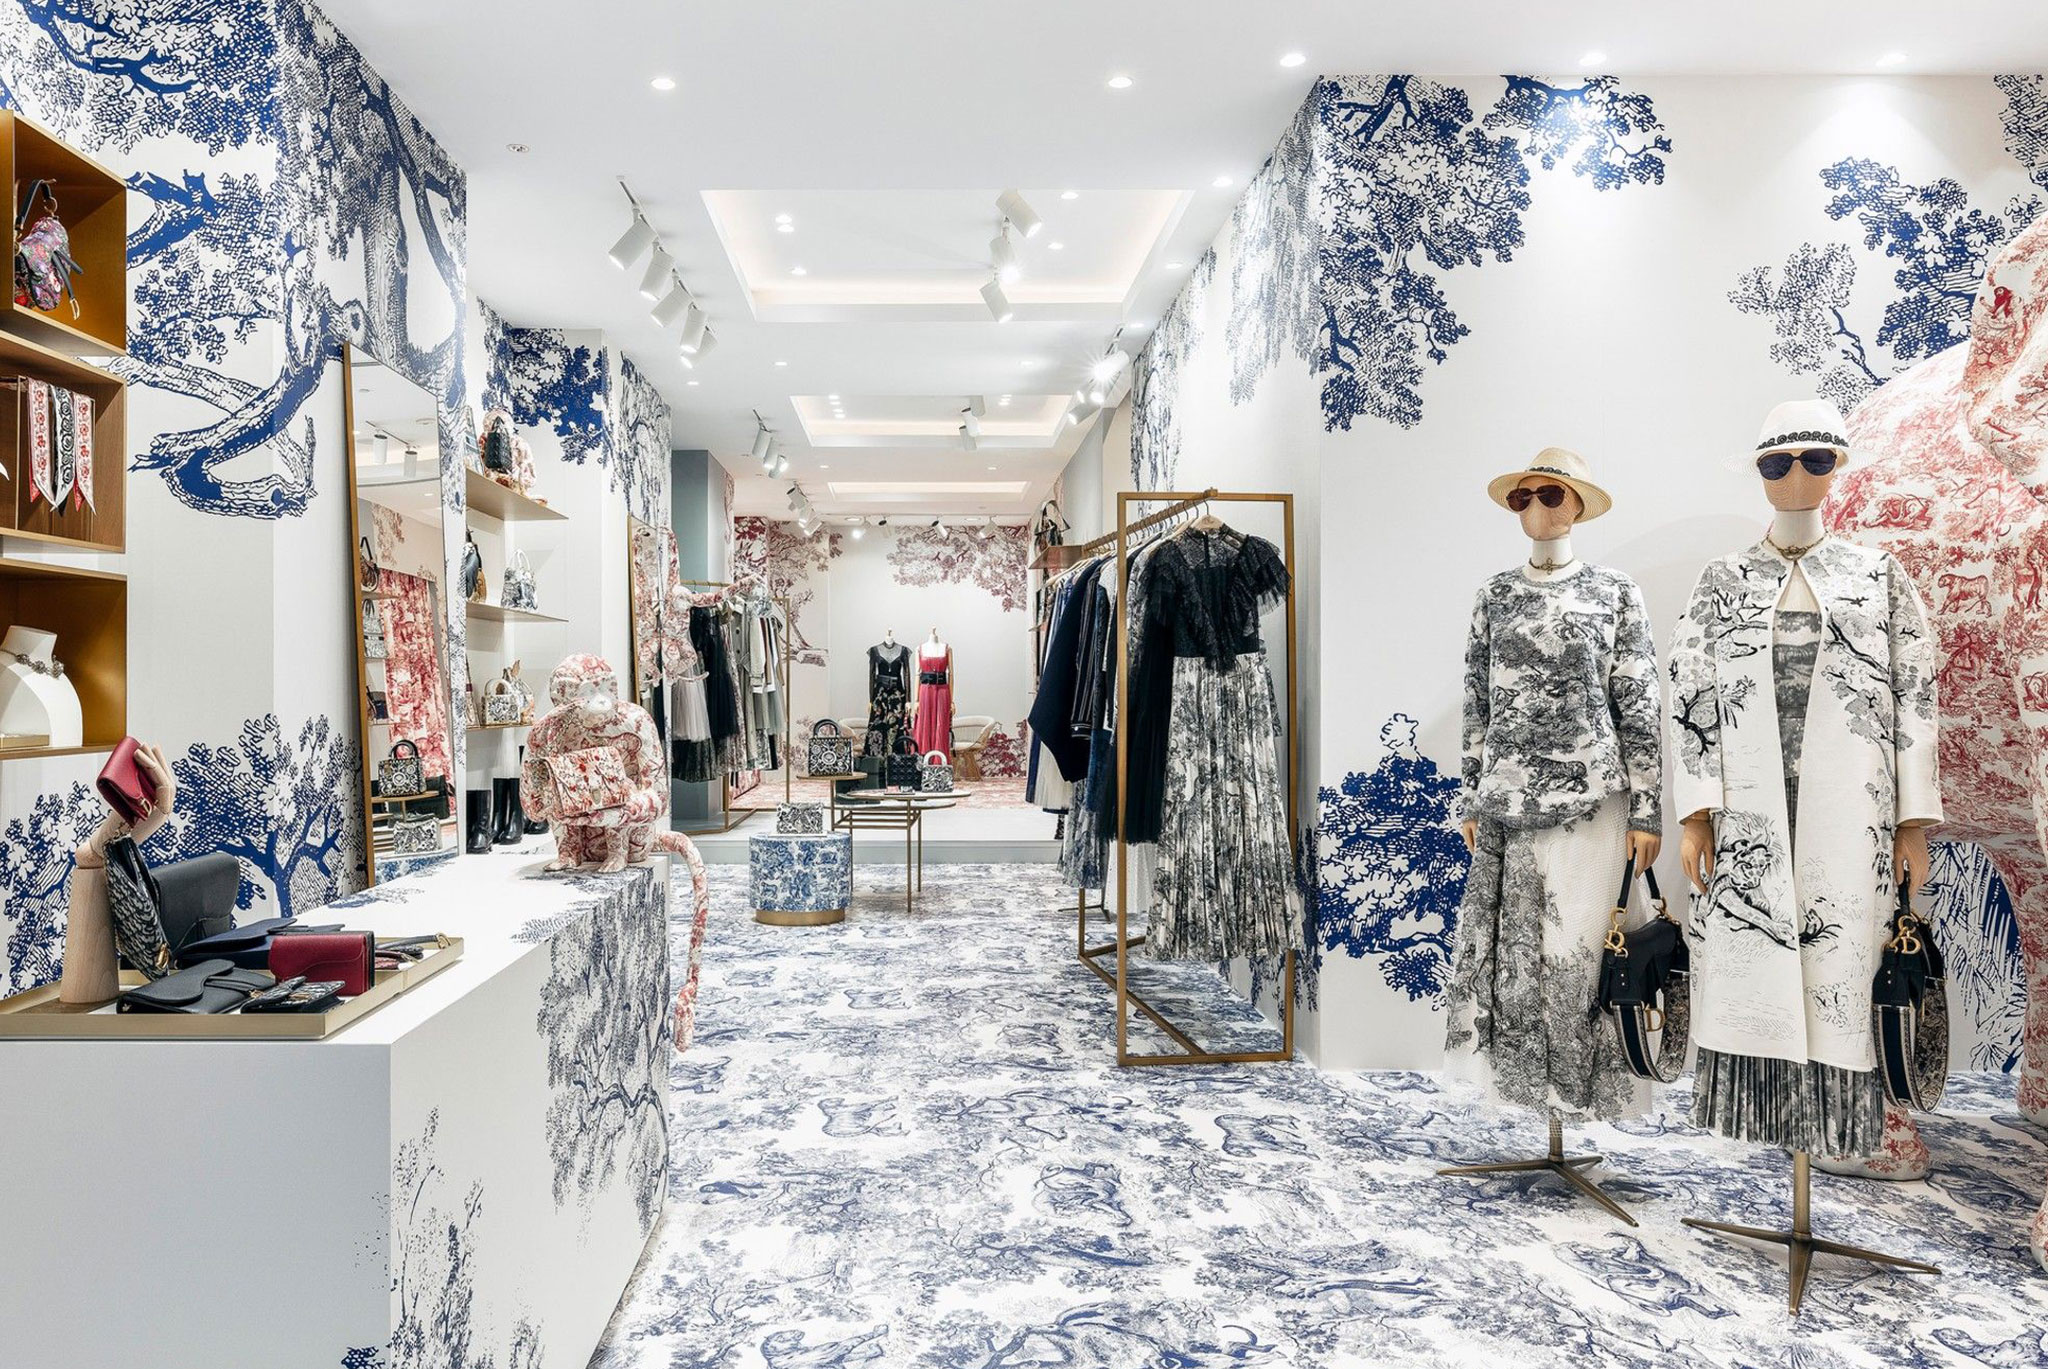 DIOR-JOUY-RETAIL-AUSTRALIA-IWD-BLOG-MERCHANDISING-DISPLAY